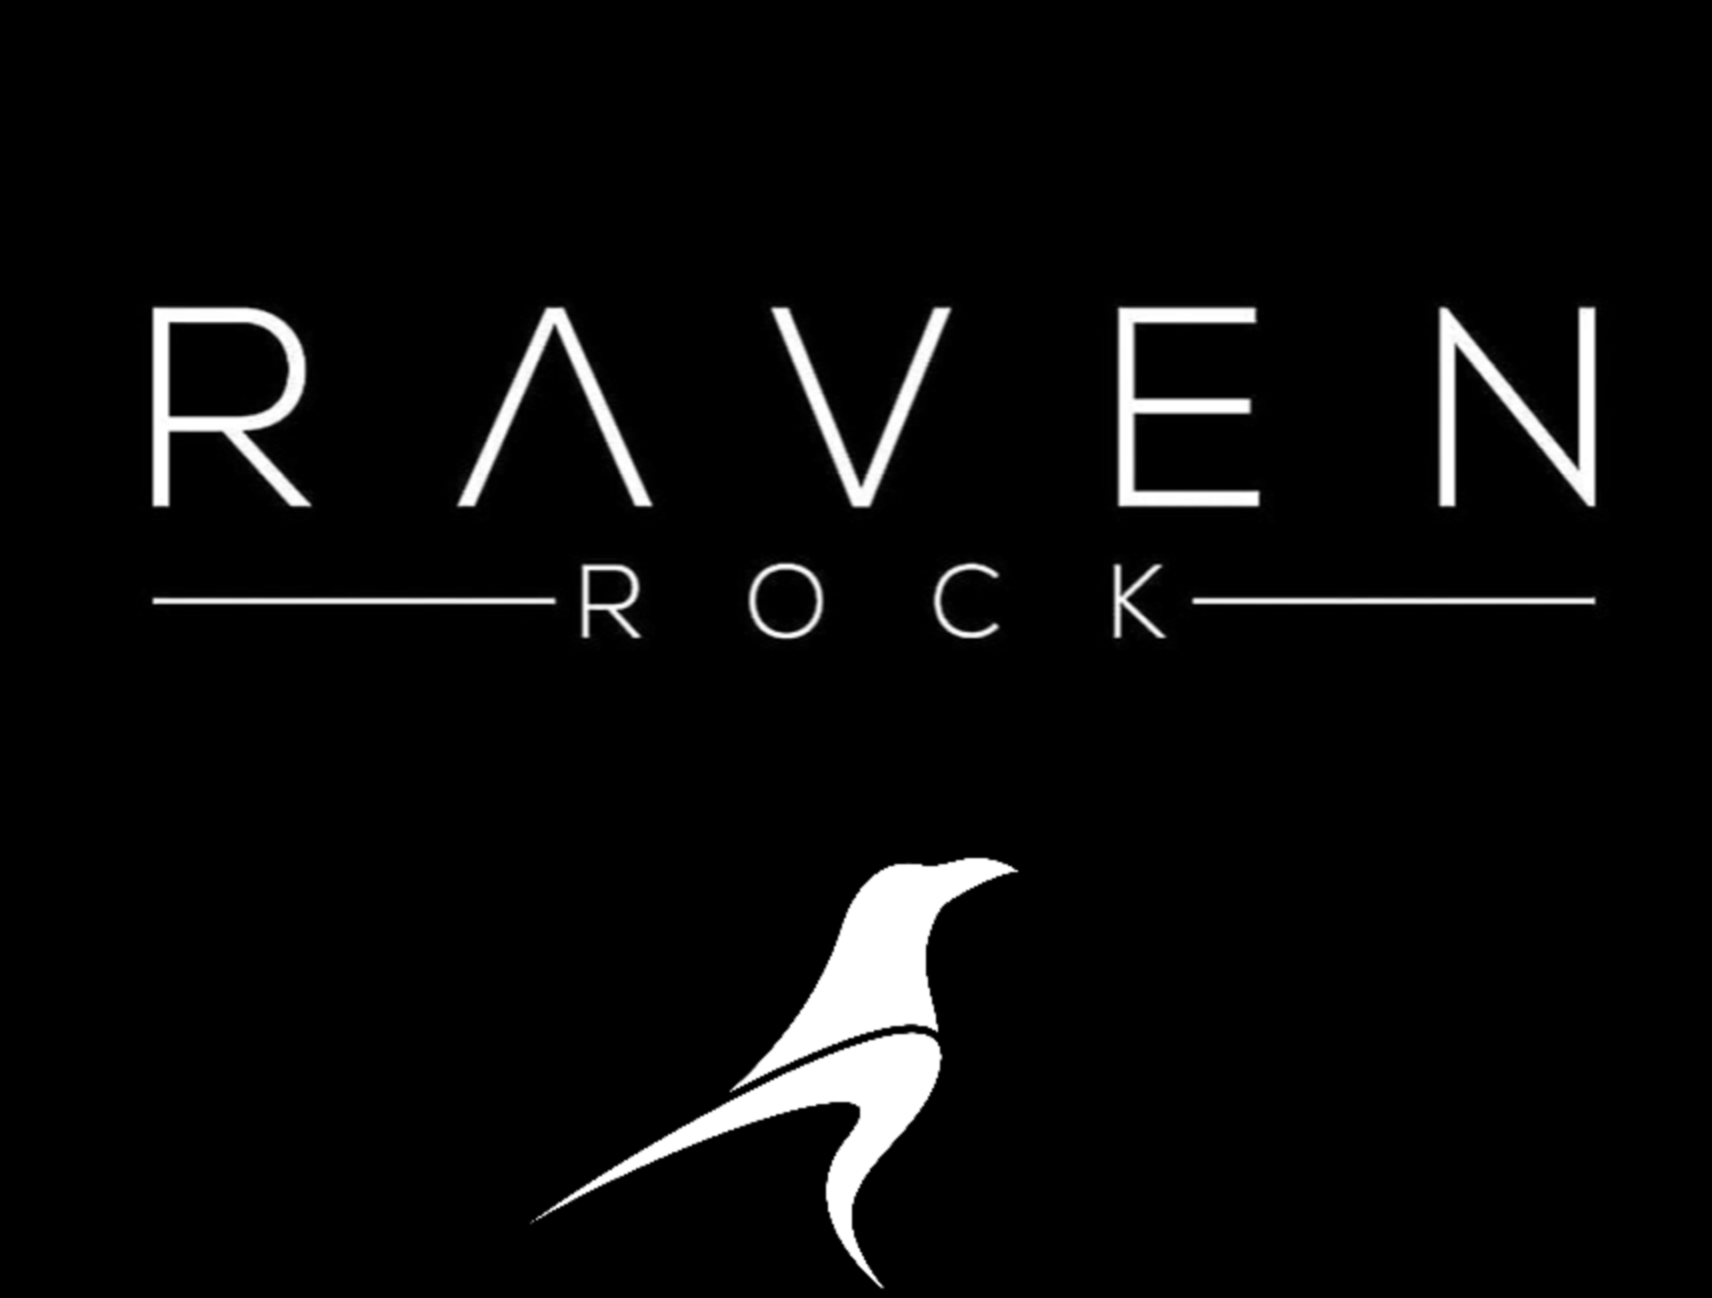 RAVEN ROCK Clothing